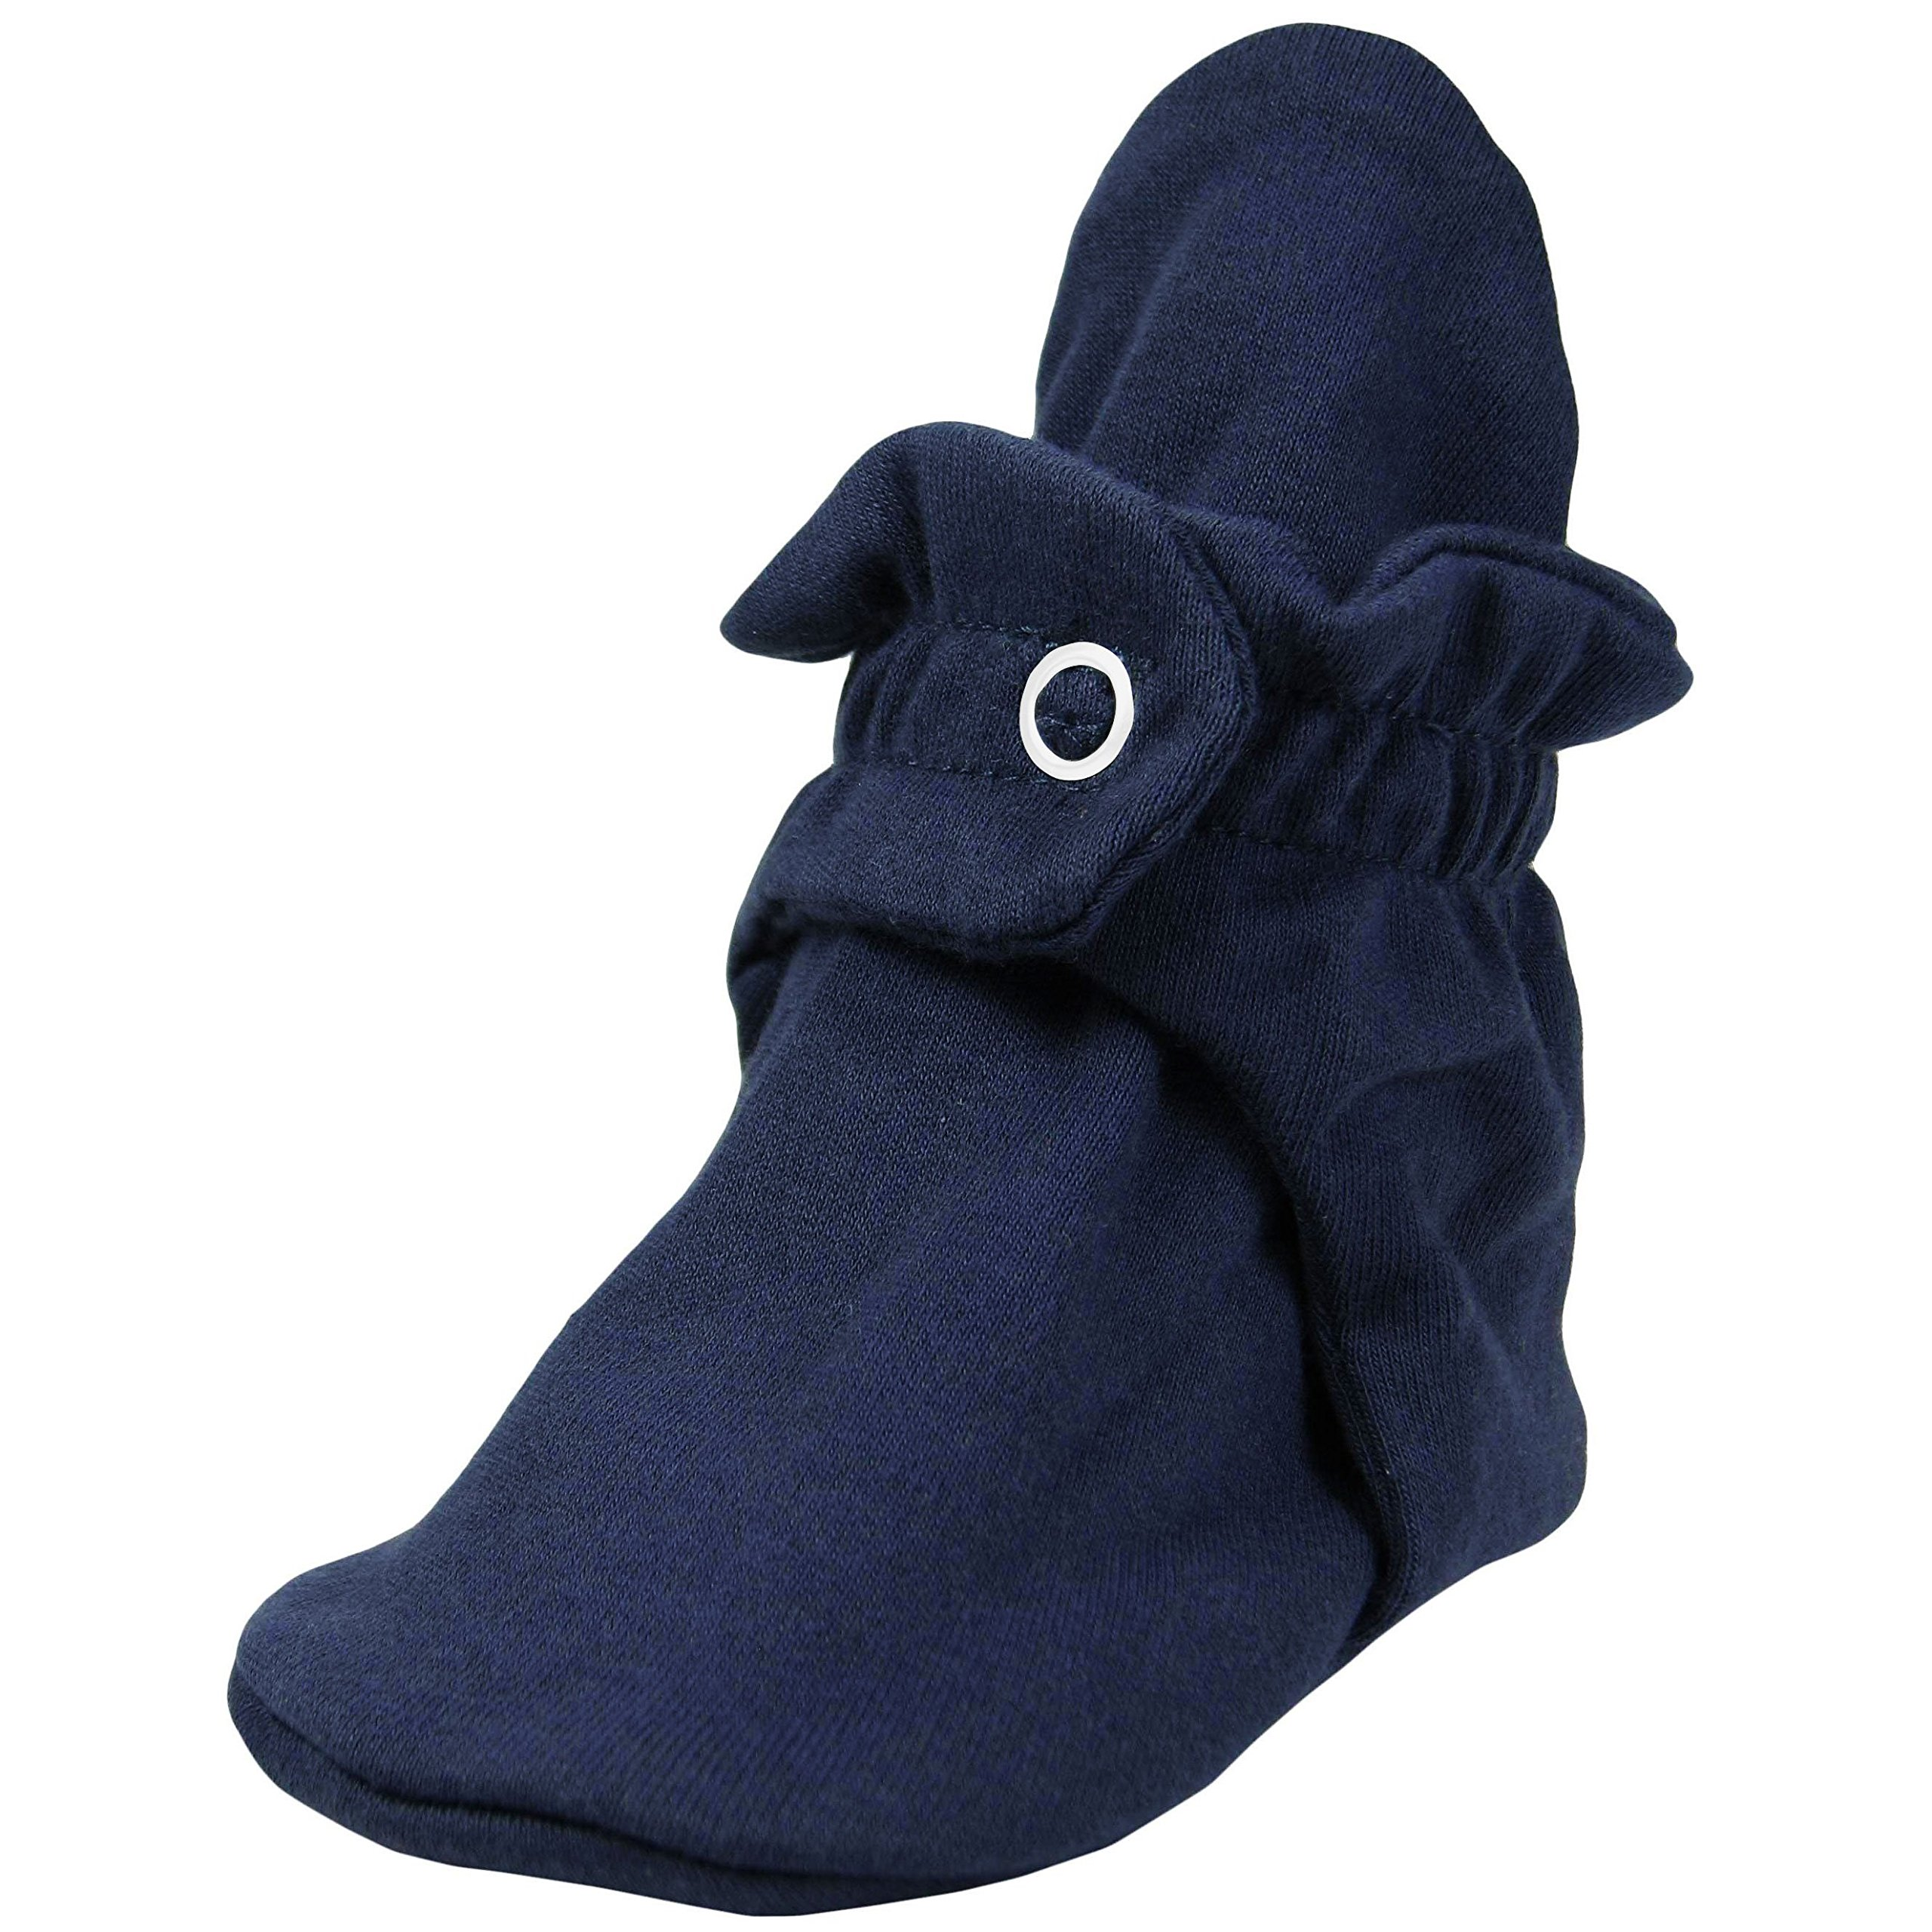 Zutano Cotton Booties Unisex For Baby Boys or Baby Girls - Navy - 18 Months